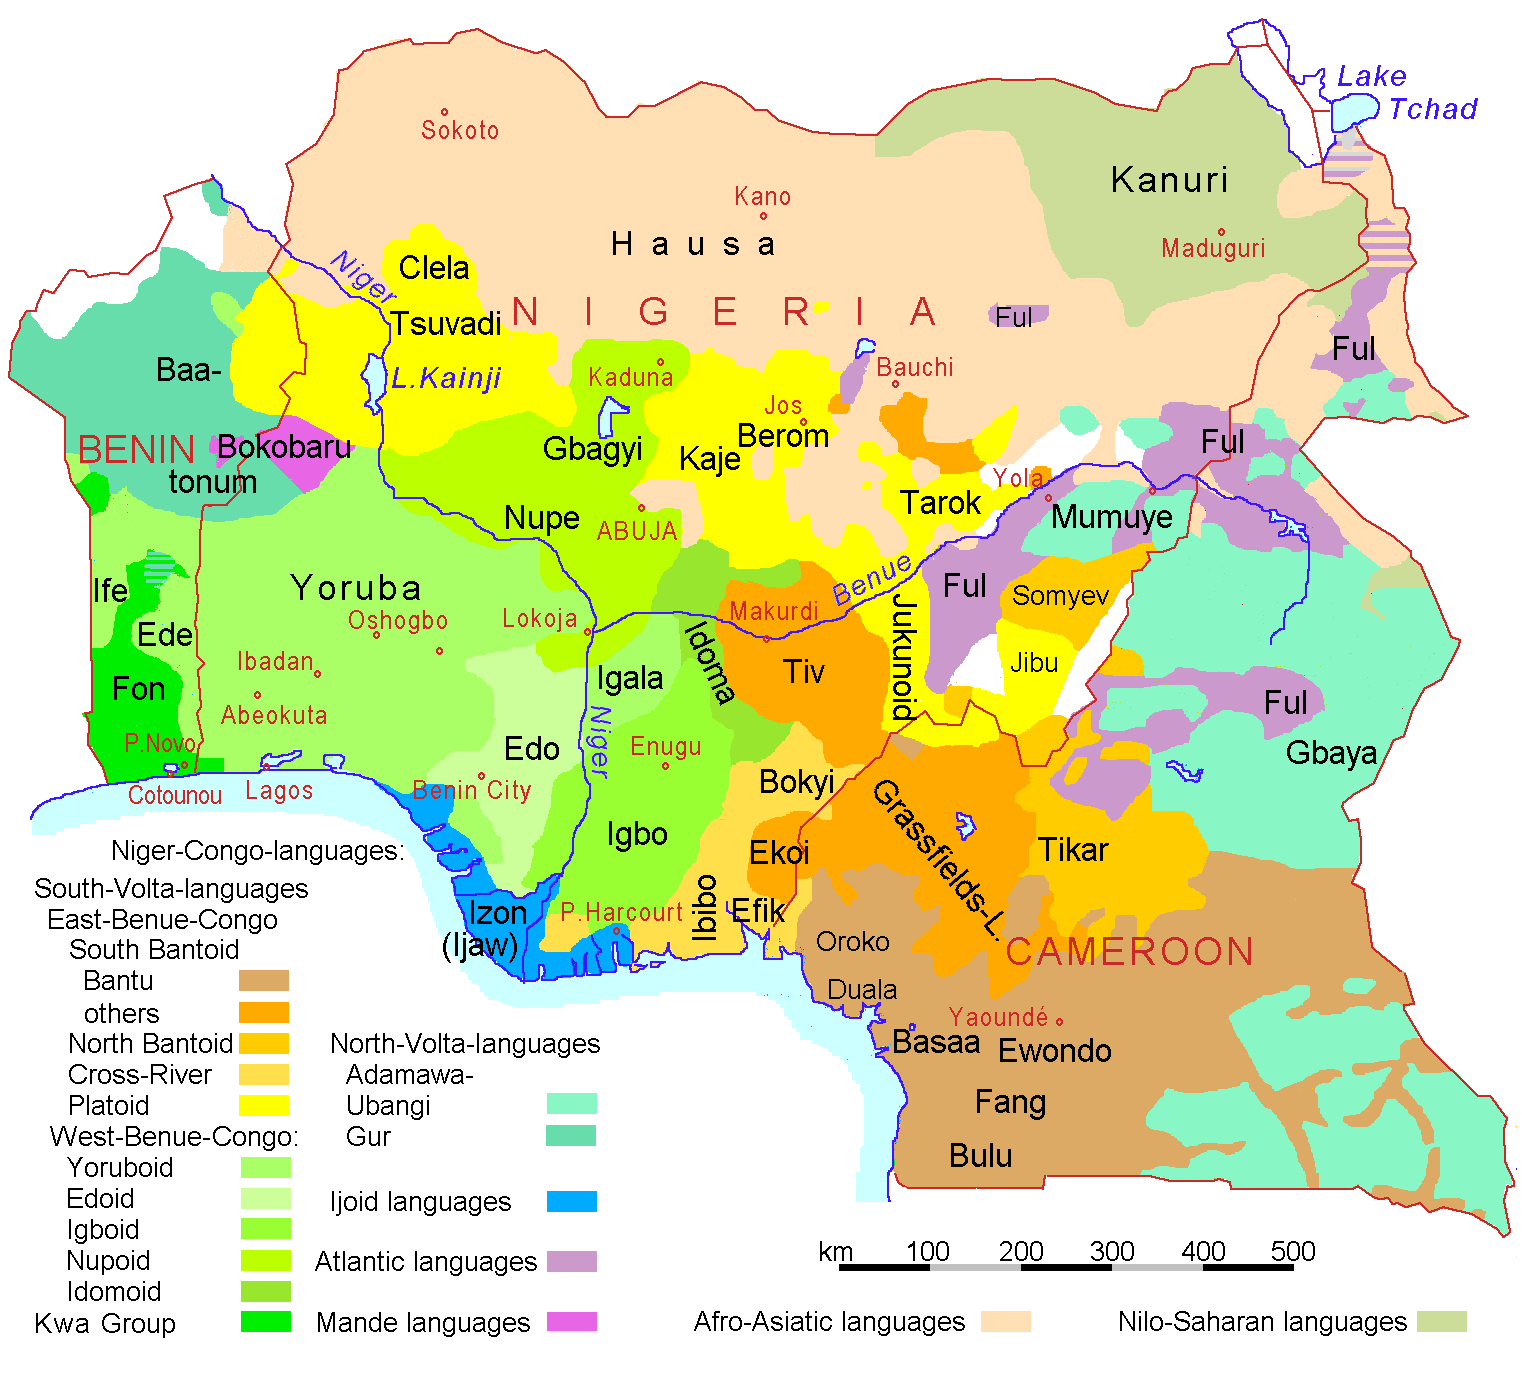 Nigeria Benin Cameroon Languages large map